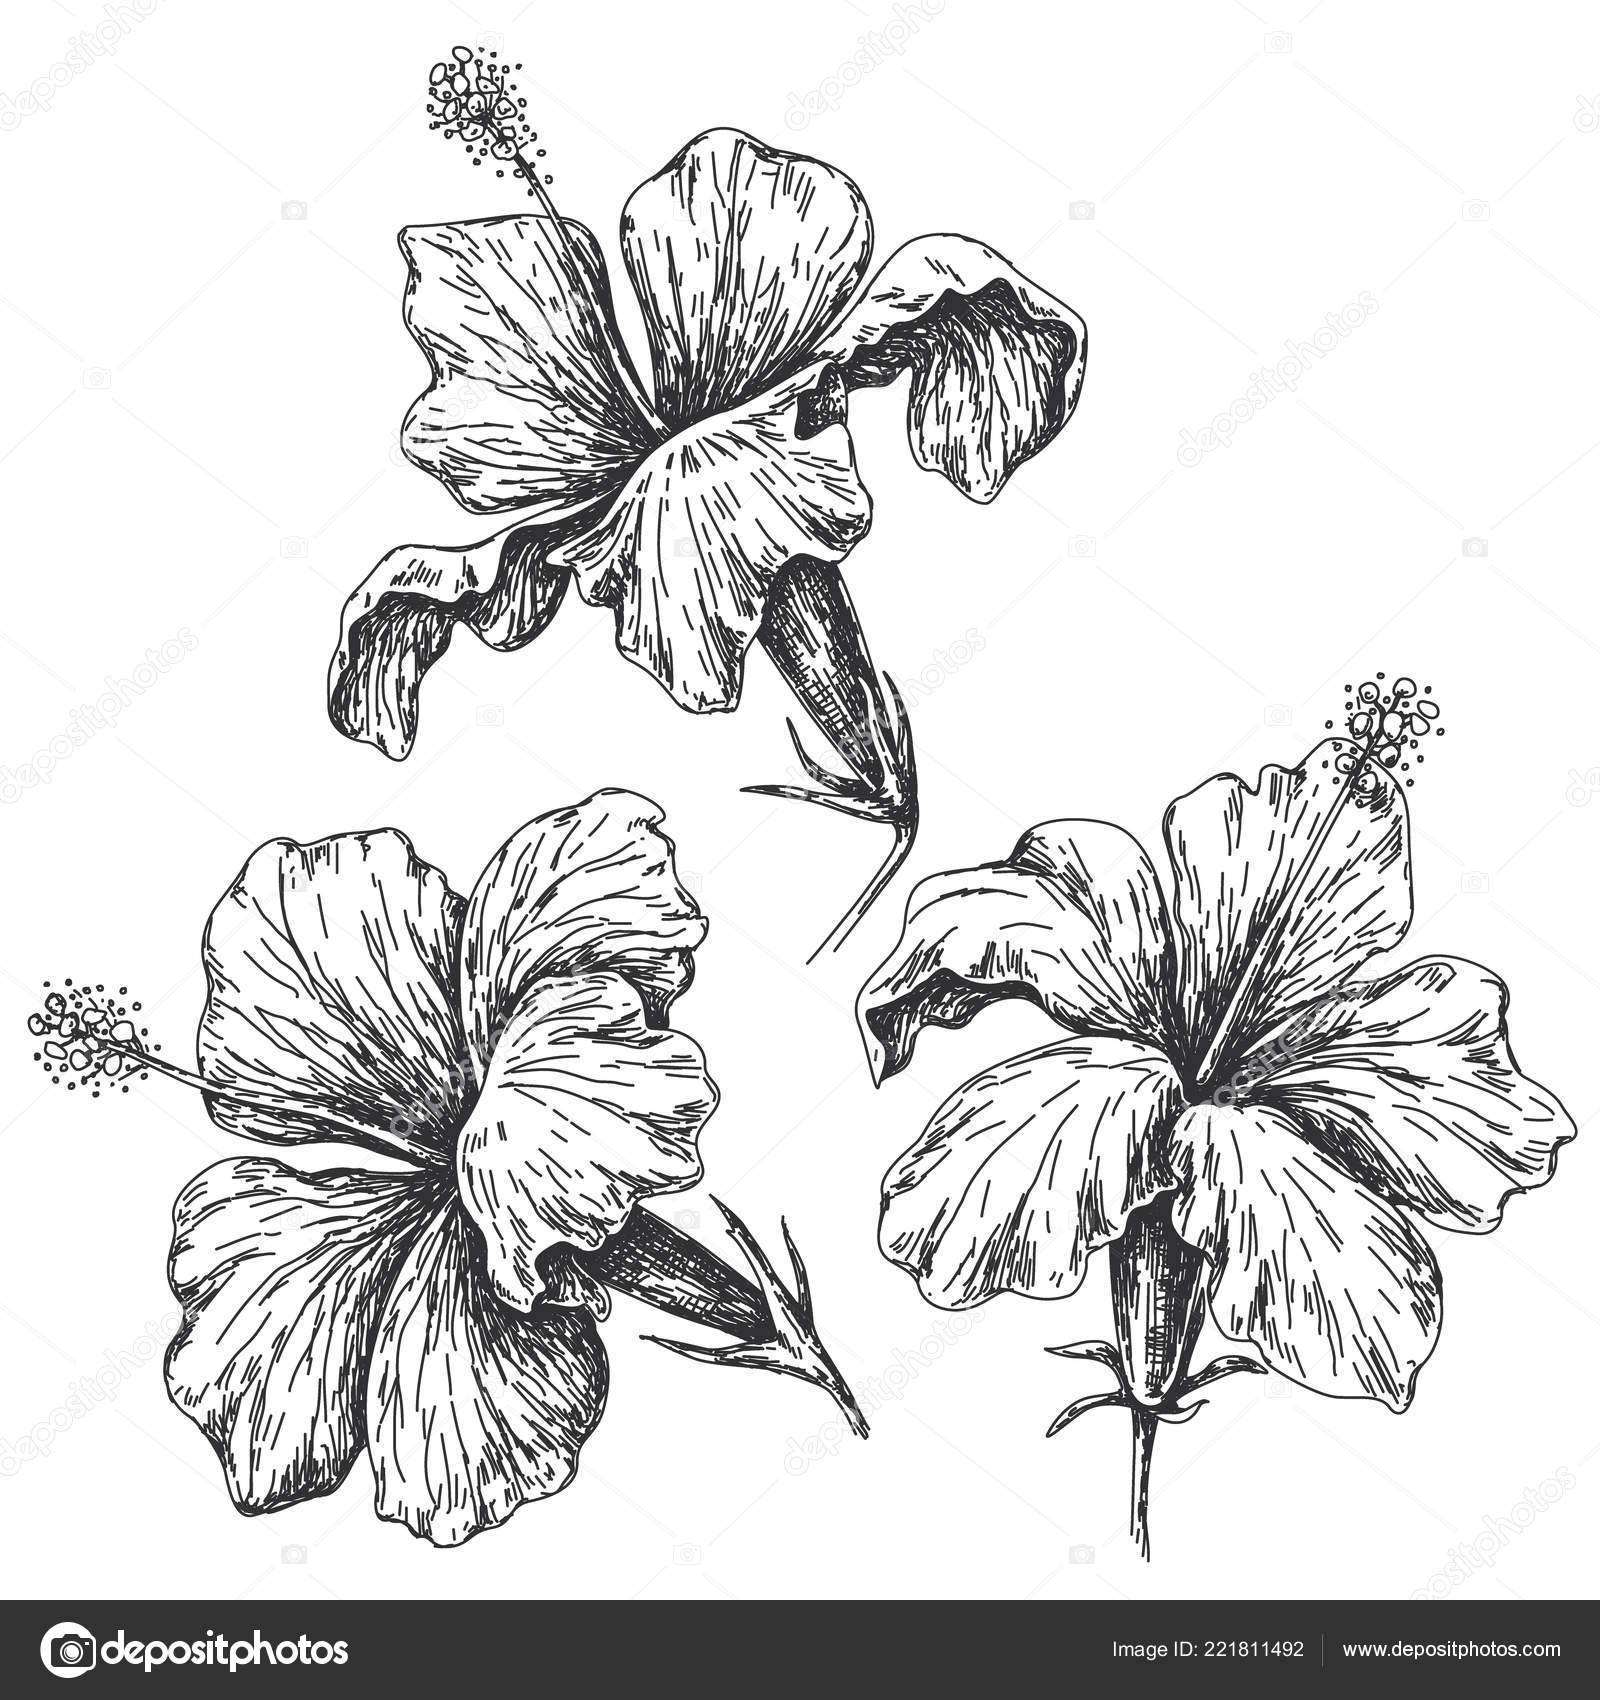 hibiscus drawing hibiscus flower by darklord11222 on deviantart drawing hibiscus